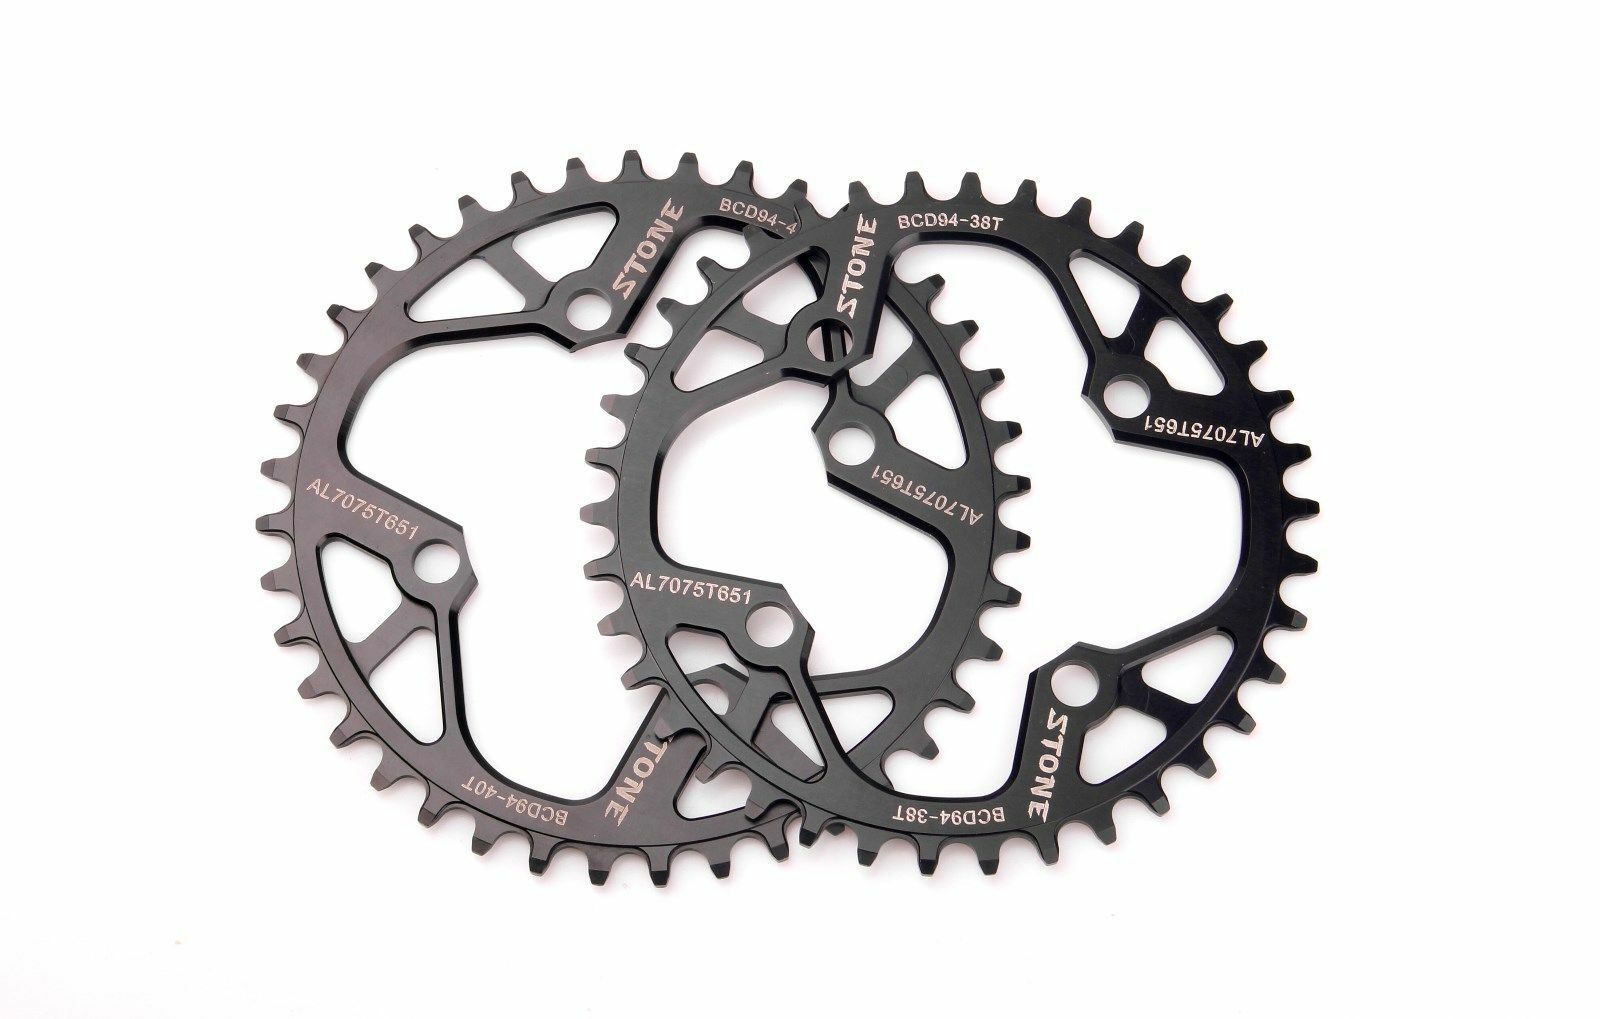 BCD94 Single Chainring Narrow  Wide NW Circle 1x System for Sram X1 NX GX94 FSA  discounts and more